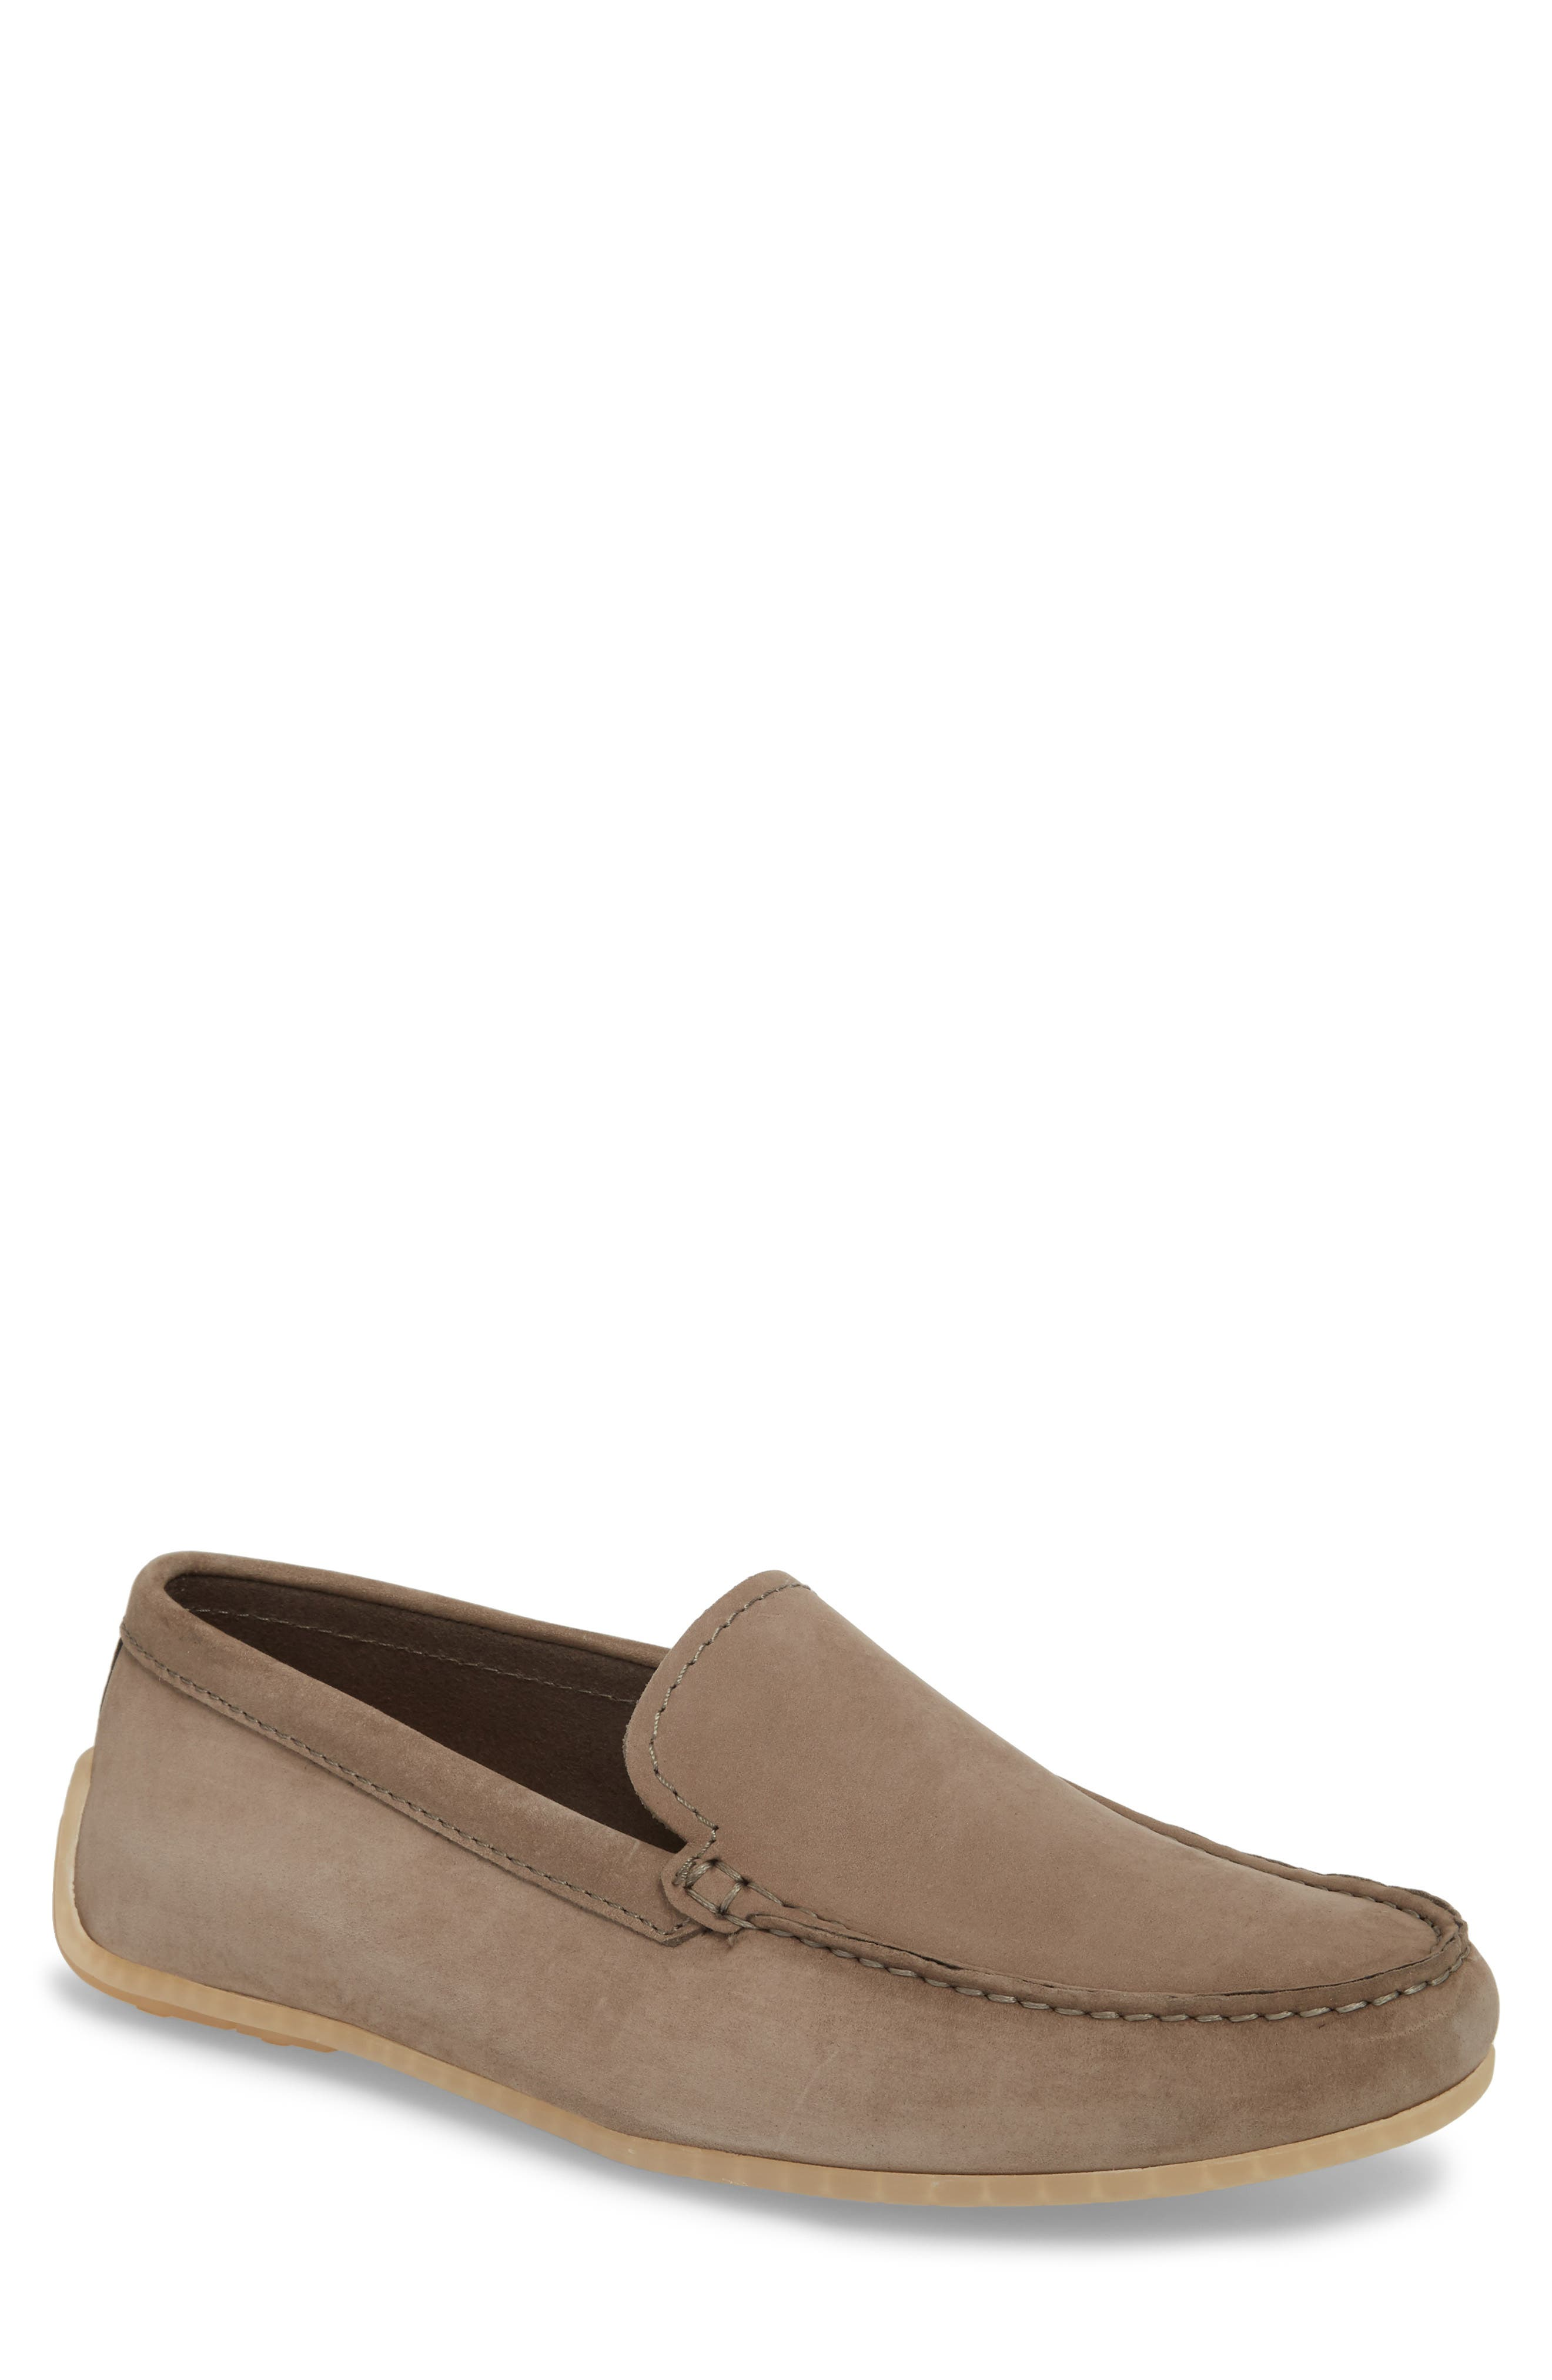 Clarks<sup>®</sup> Reazor Edge Driving Moccasin,                         Main,                         color, SAGE NUBUCK